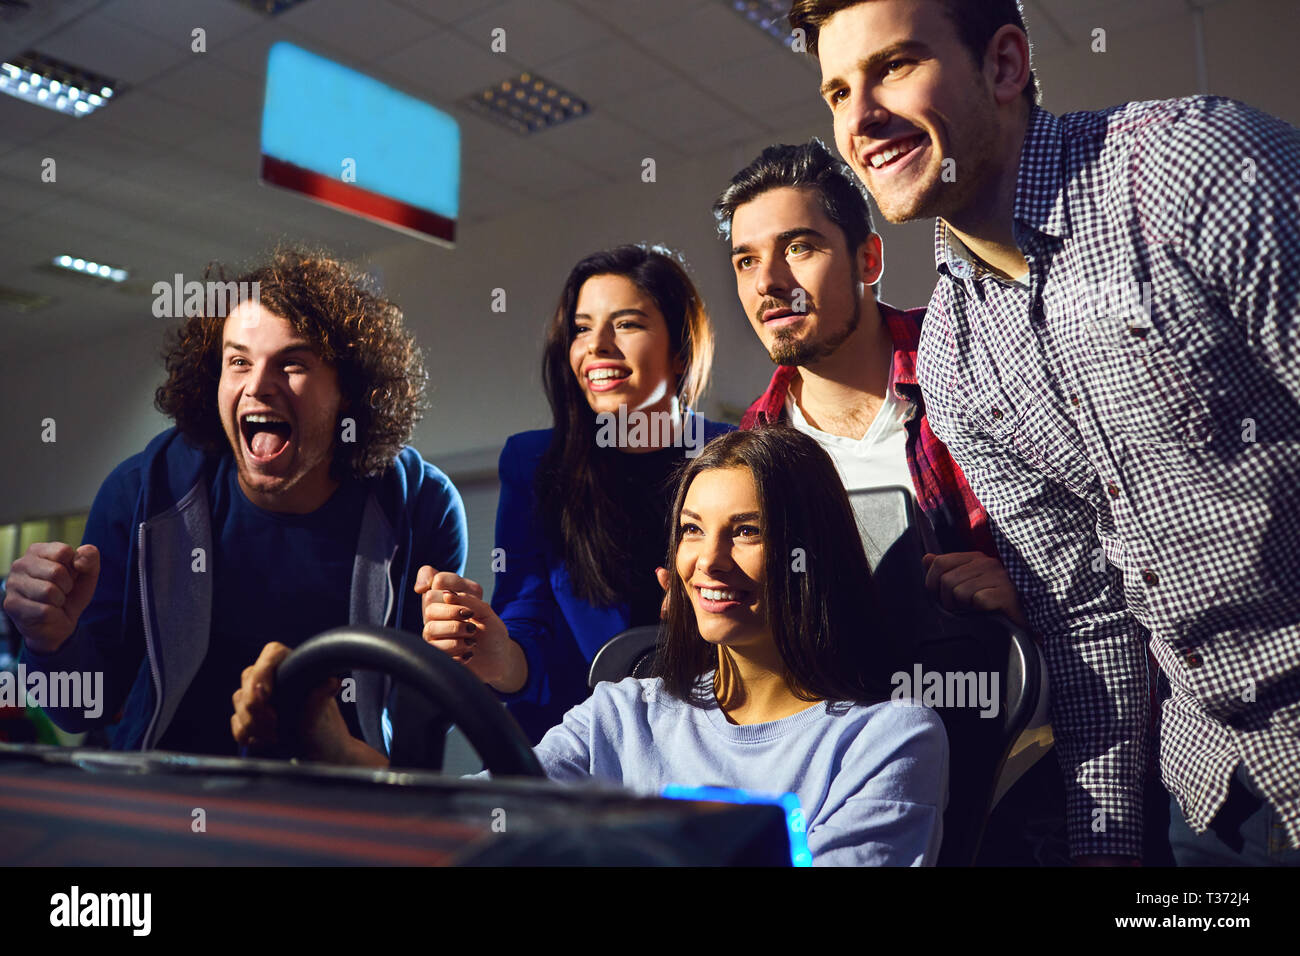 A group of friends playing arcade machine. - Stock Image